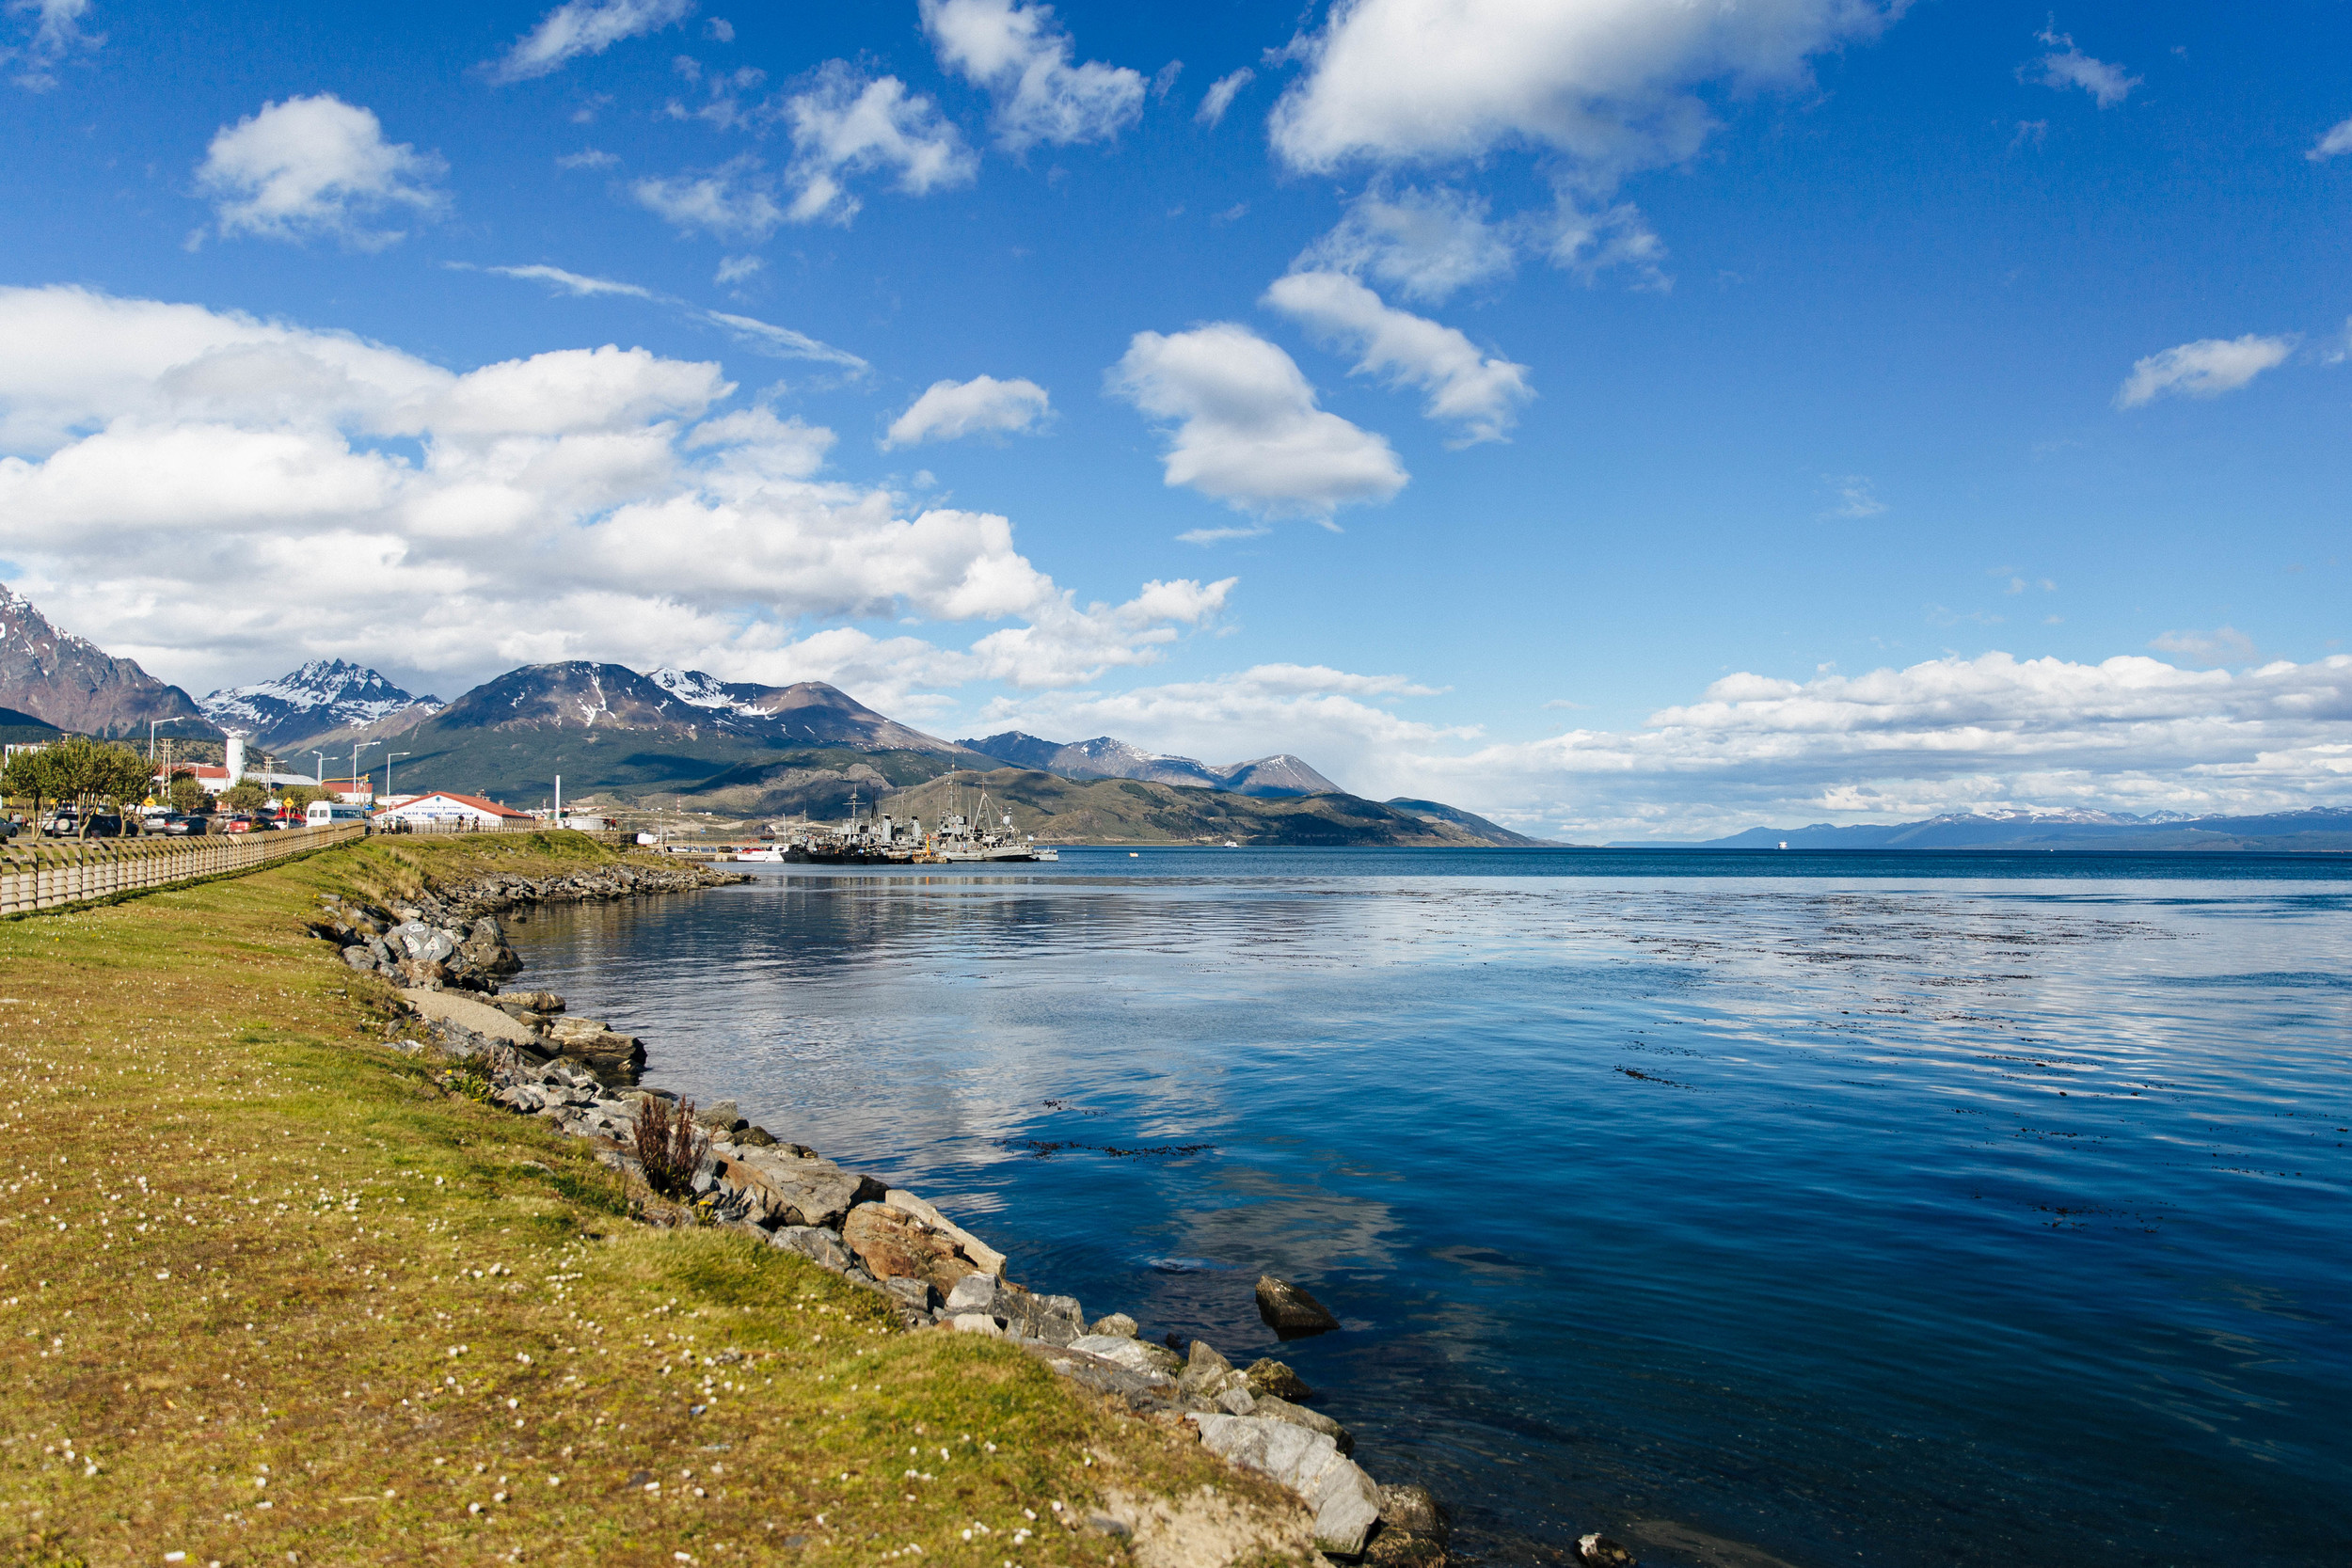 Ushuaia, the southern-most city in the world and port-of-call for my trip to Antarctica.